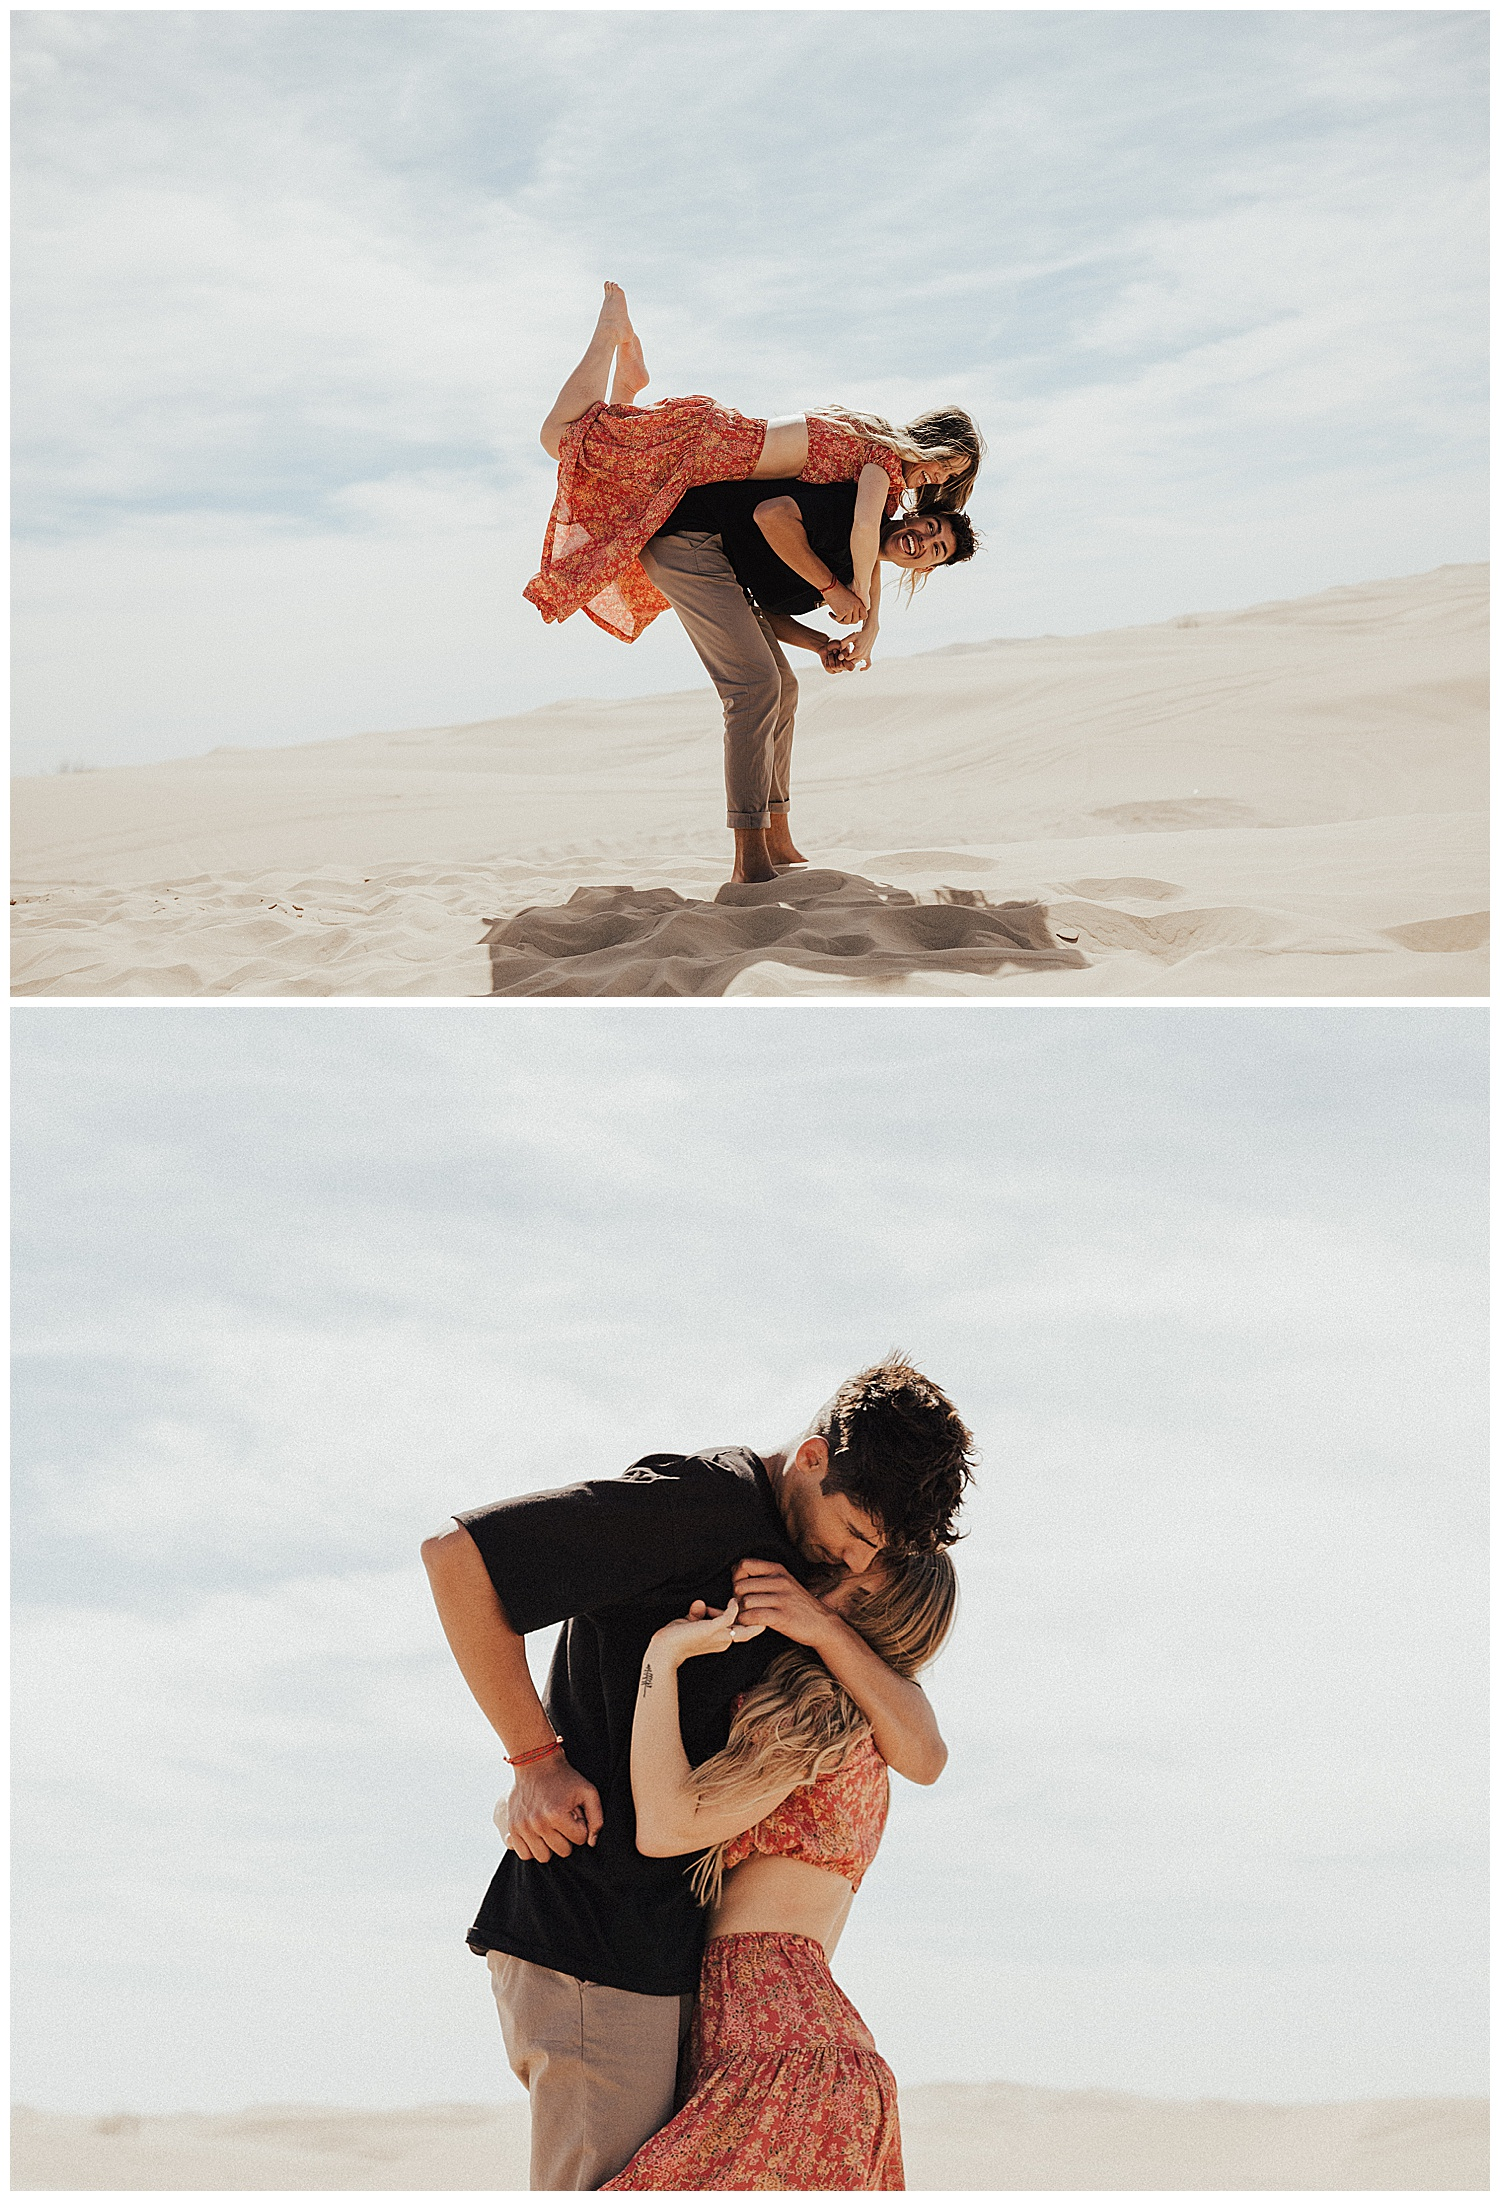 Glamis Sand Dunes Engagement photos, Engagement Photographer, elopement photographer, Sand dunes Engagement shoot, June Bug Weddings, Adventurous love story, hello may magazine